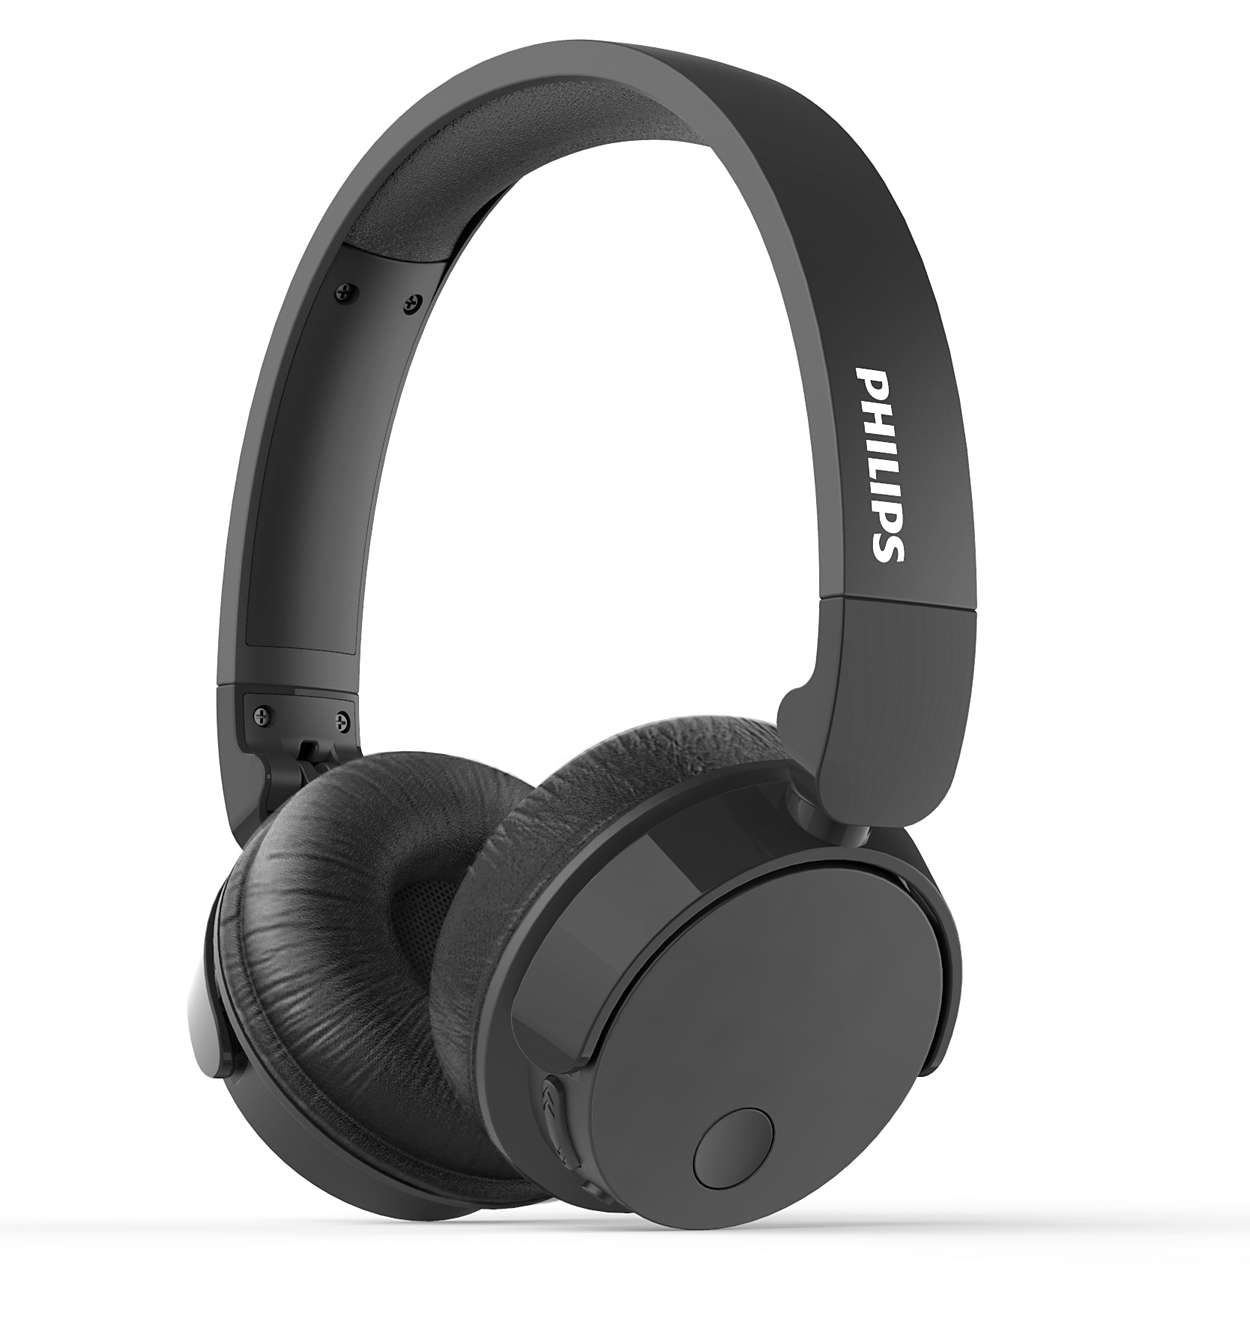 Philips TABH305BK/00 headphones/headset Head-band Black